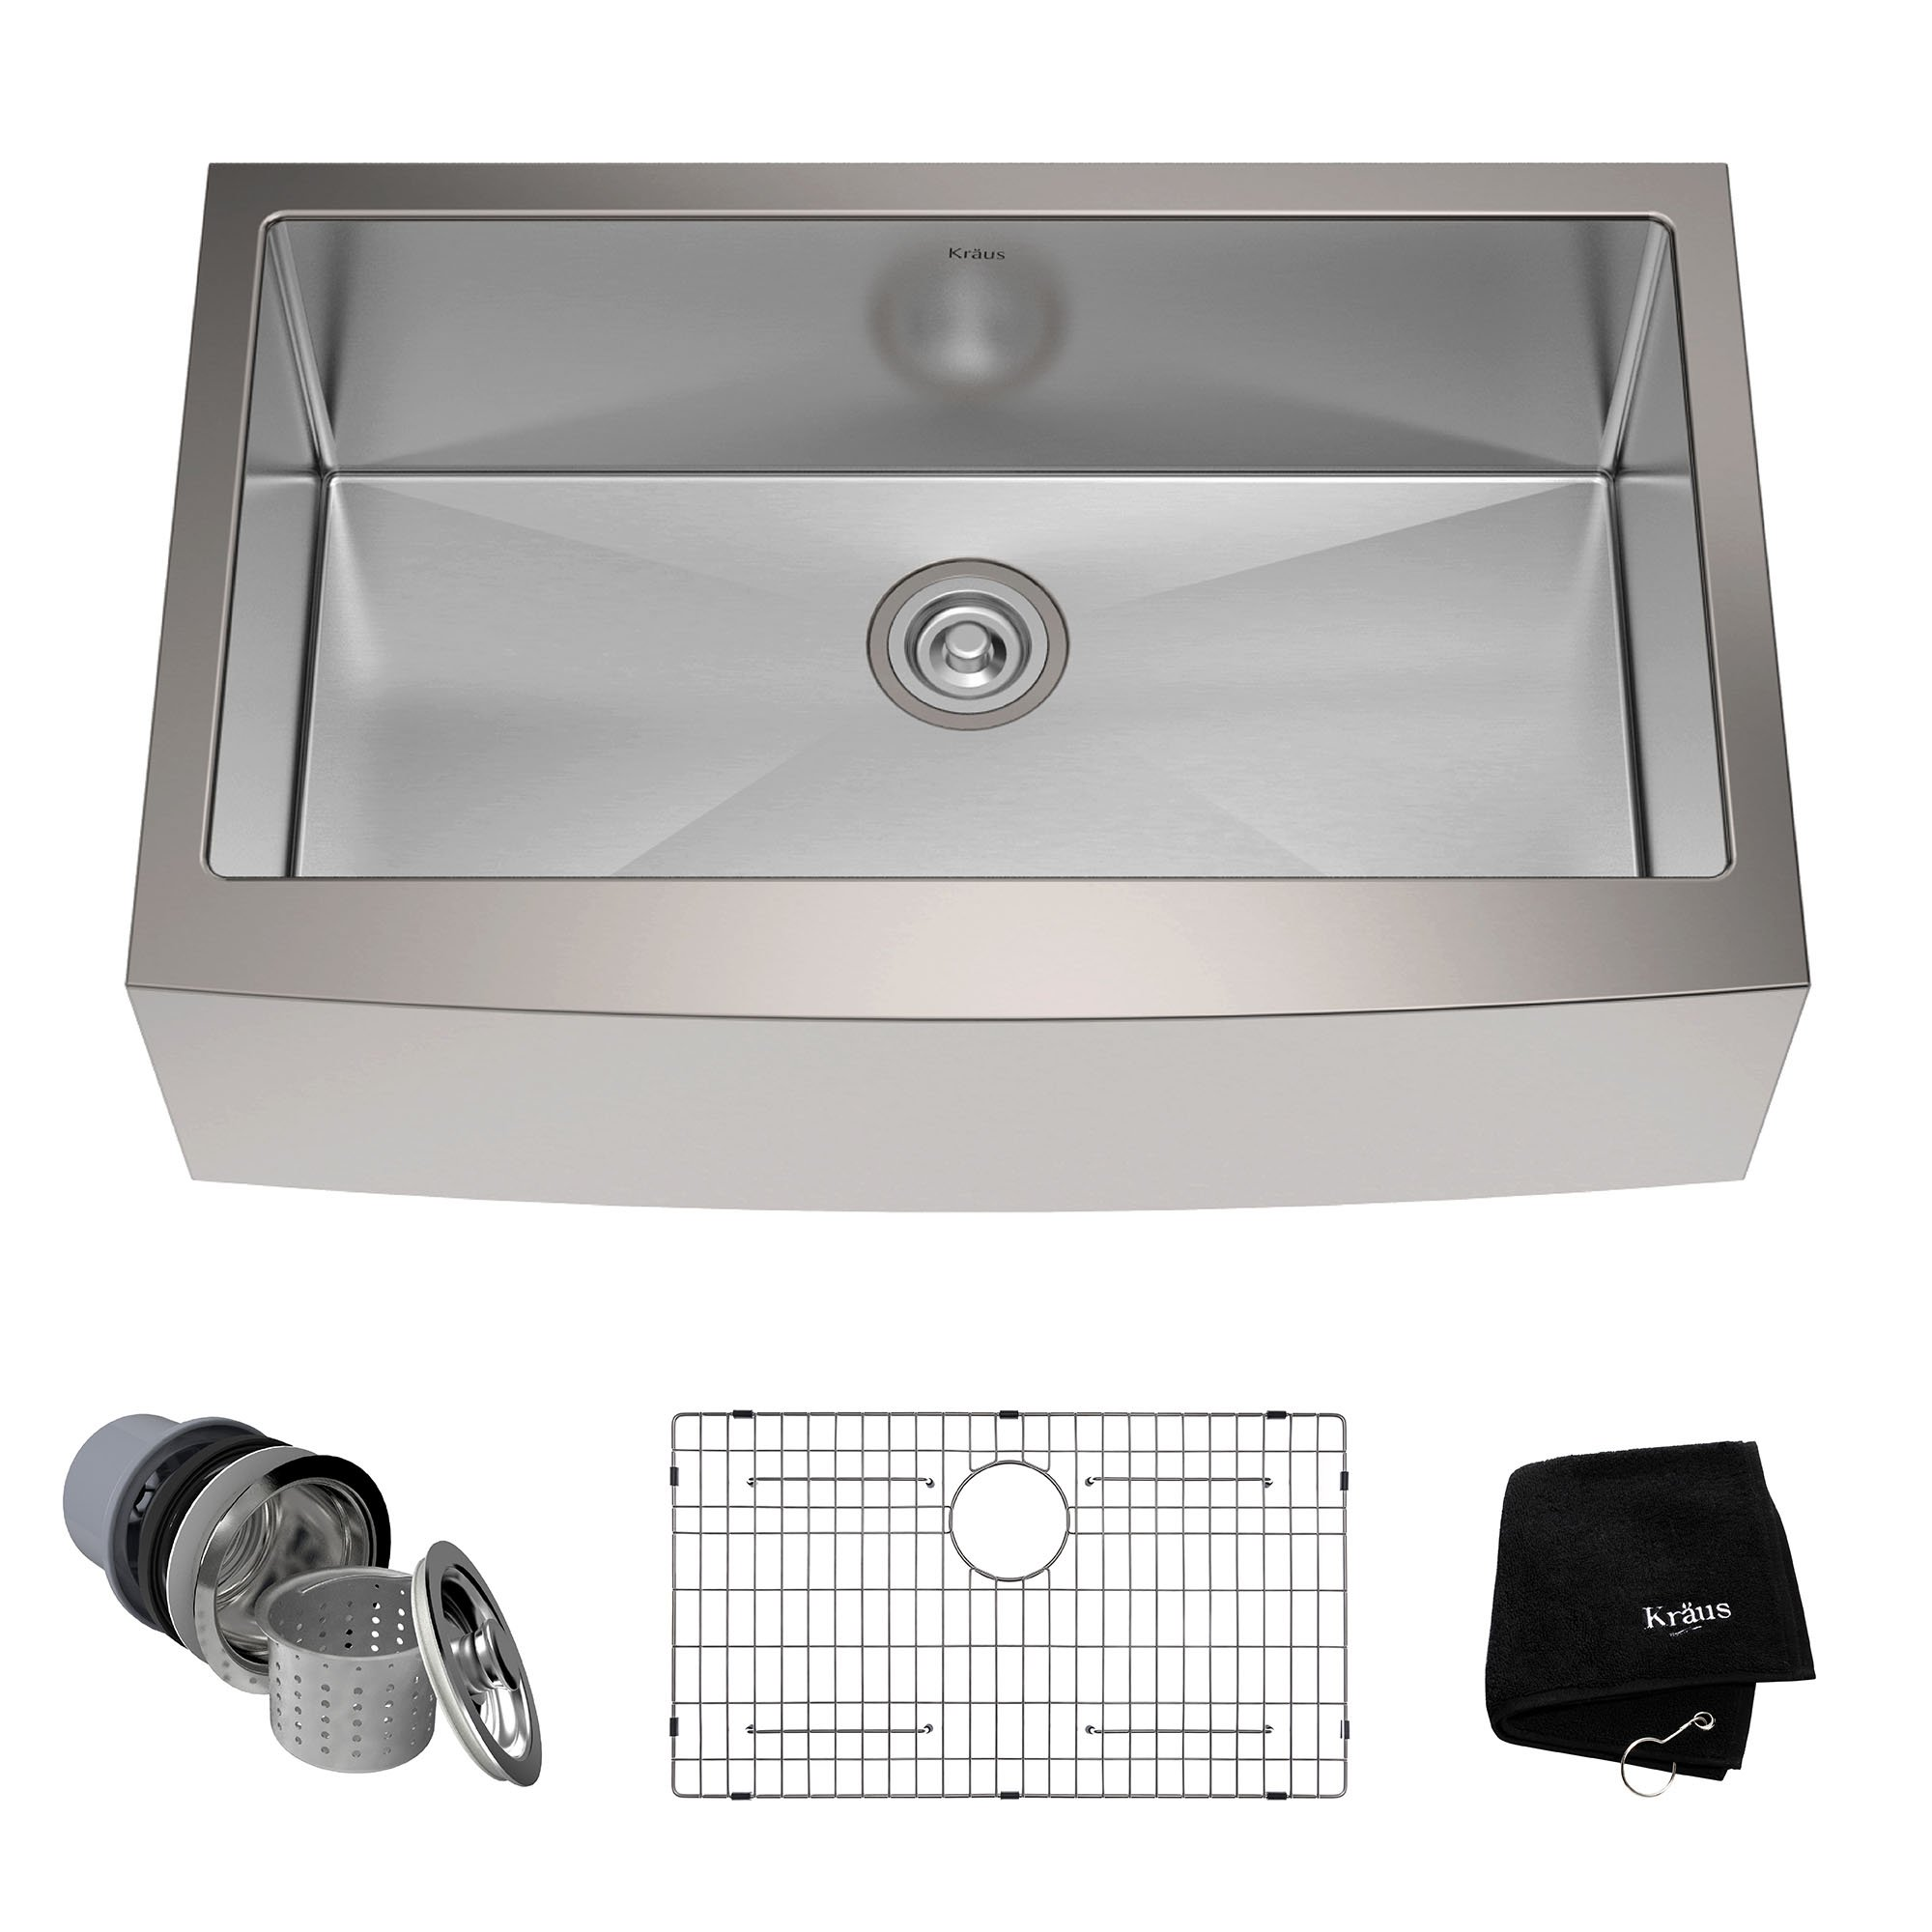 Kraus KHF200-33 33-inch Farmhouse Apron Single Bowl 16-gauge Stainless Steel Kitchen Sink by Kraus